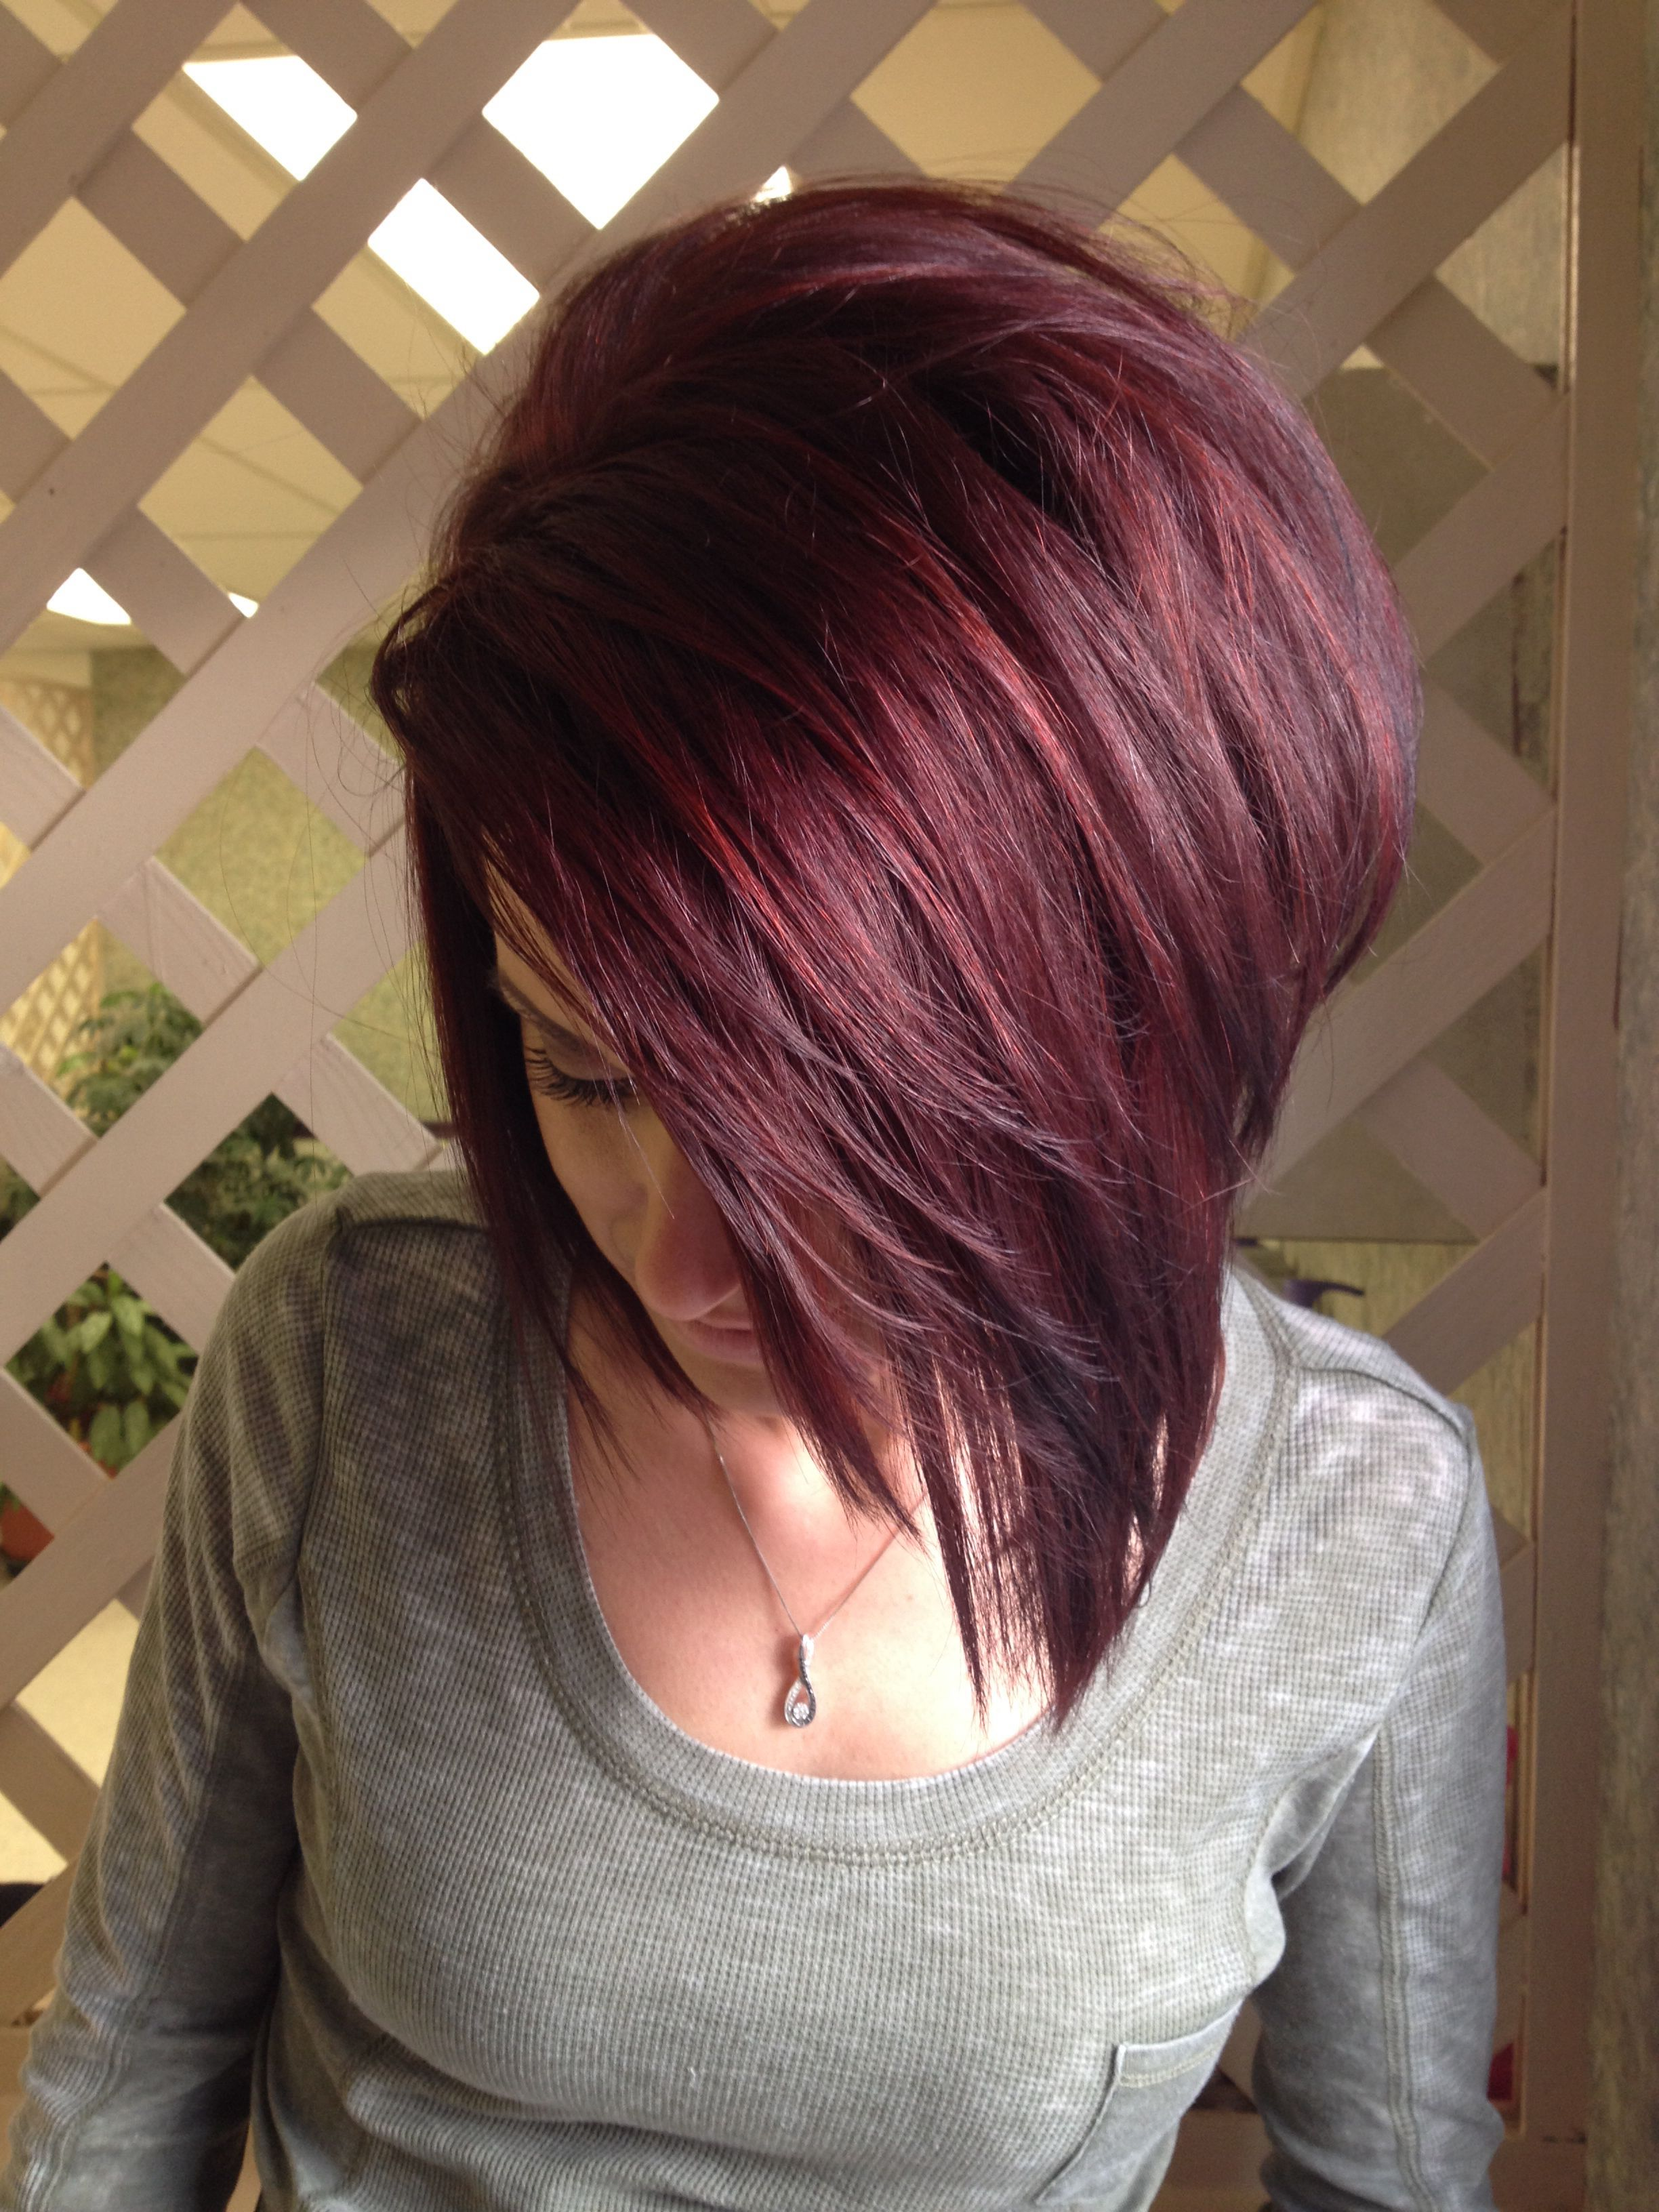 If i ever get brave and cut my hair shorthairdontcare beauty